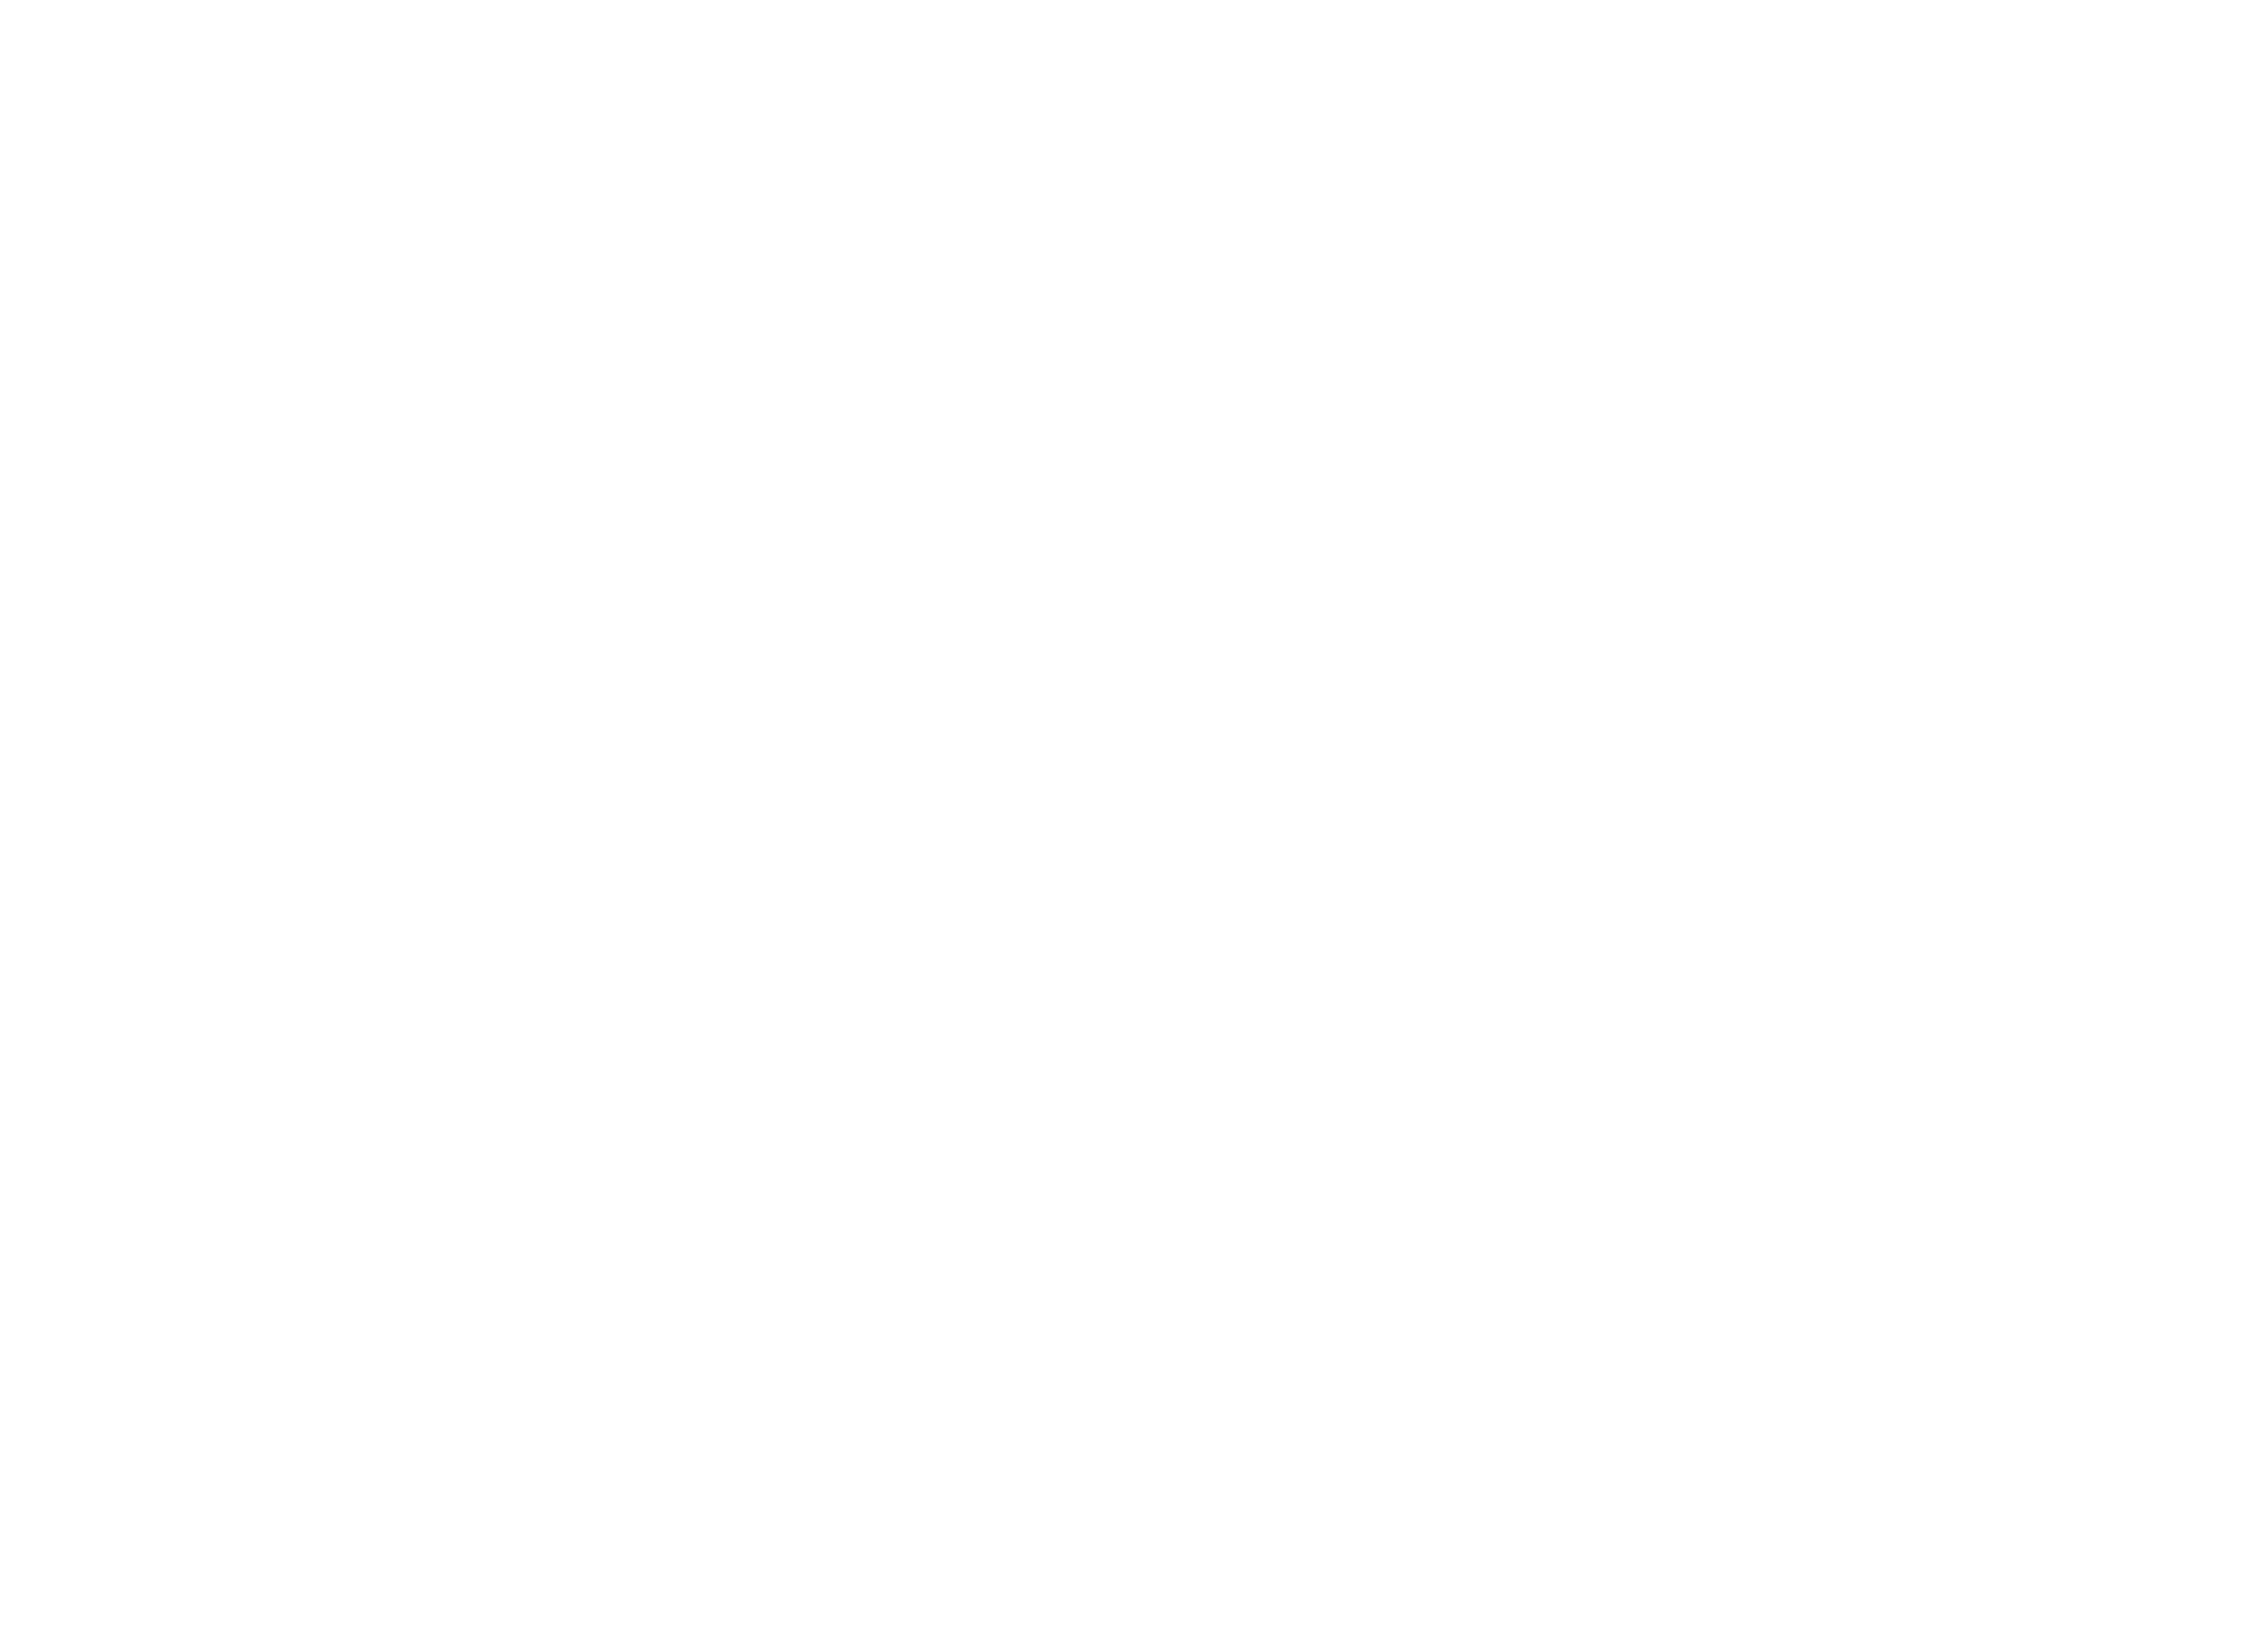 Logos_Steam_Reversed.png